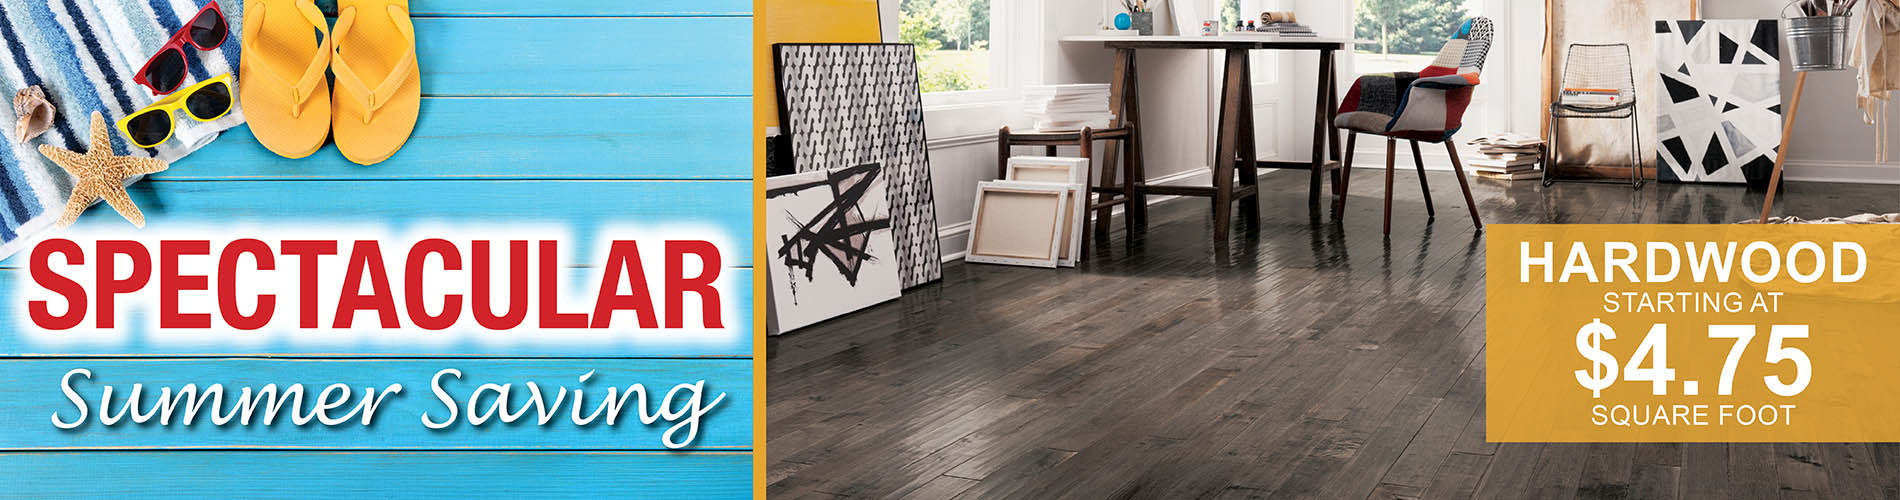 Hardwood starting at $4.75 sq.ft.  at Abbey Carpet & Floor in Ashland, MA this month only!